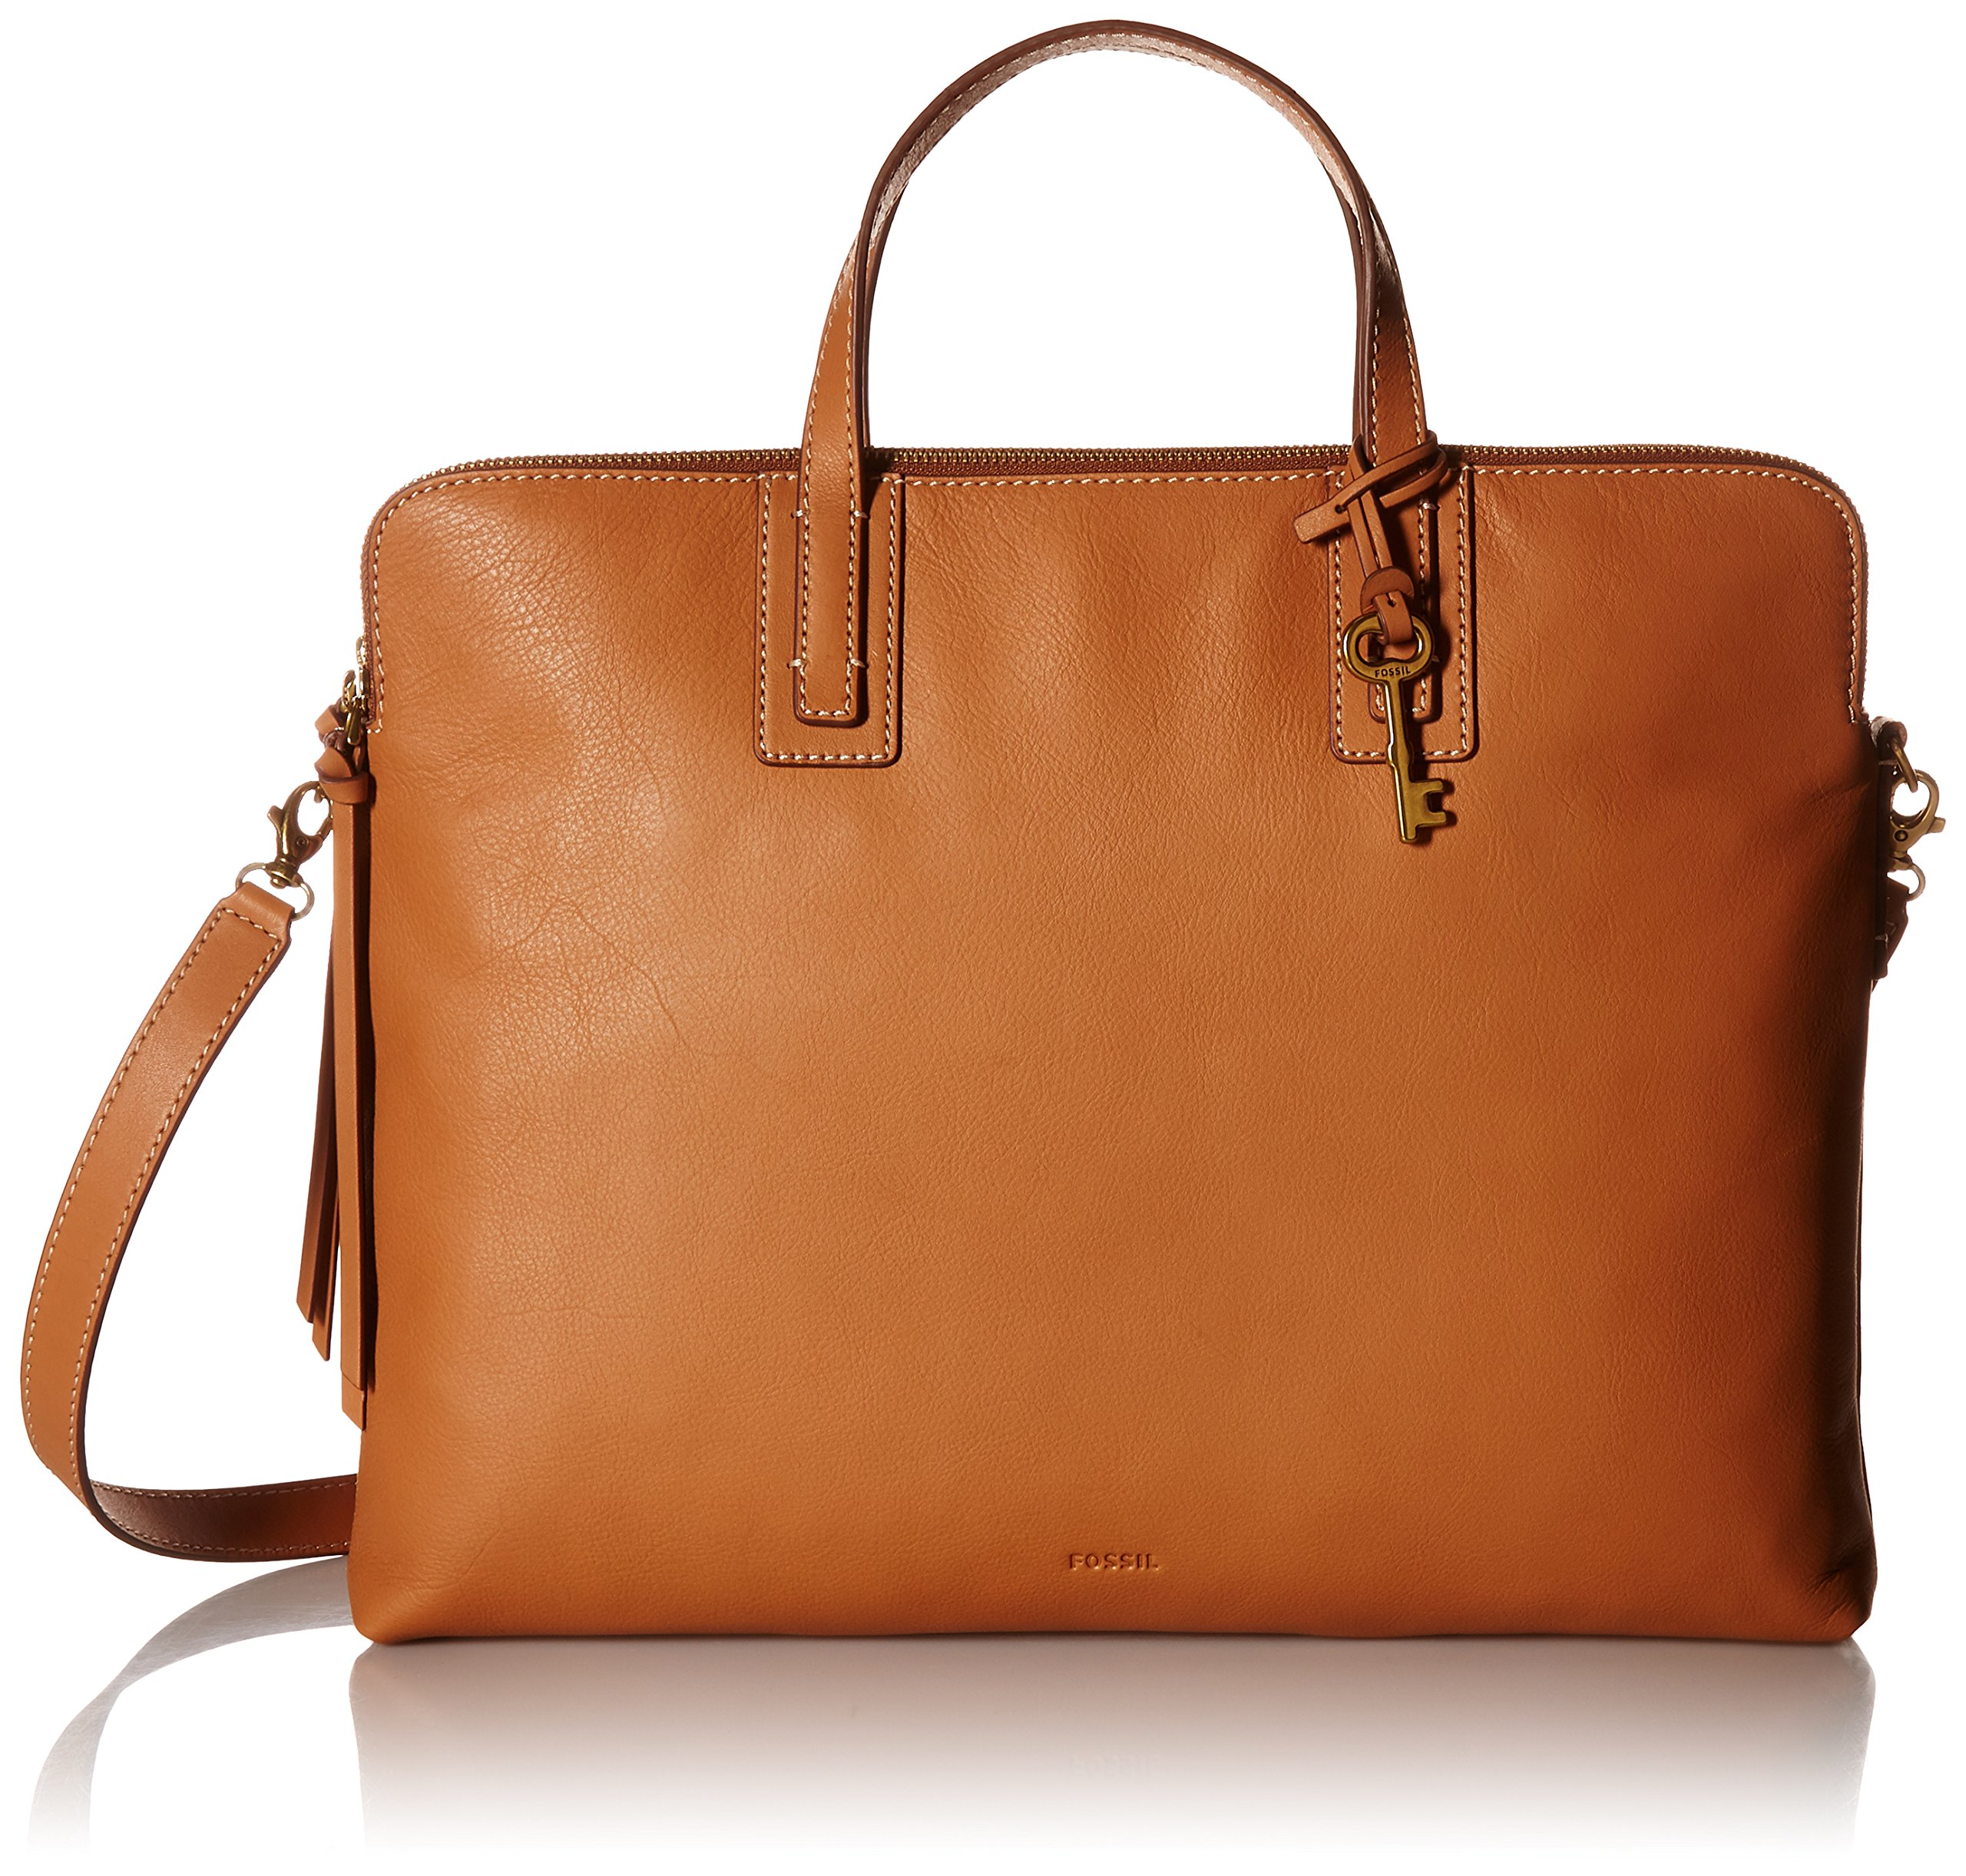 Fossil Emma Laptop Bag, Tan, One Size by Fossil